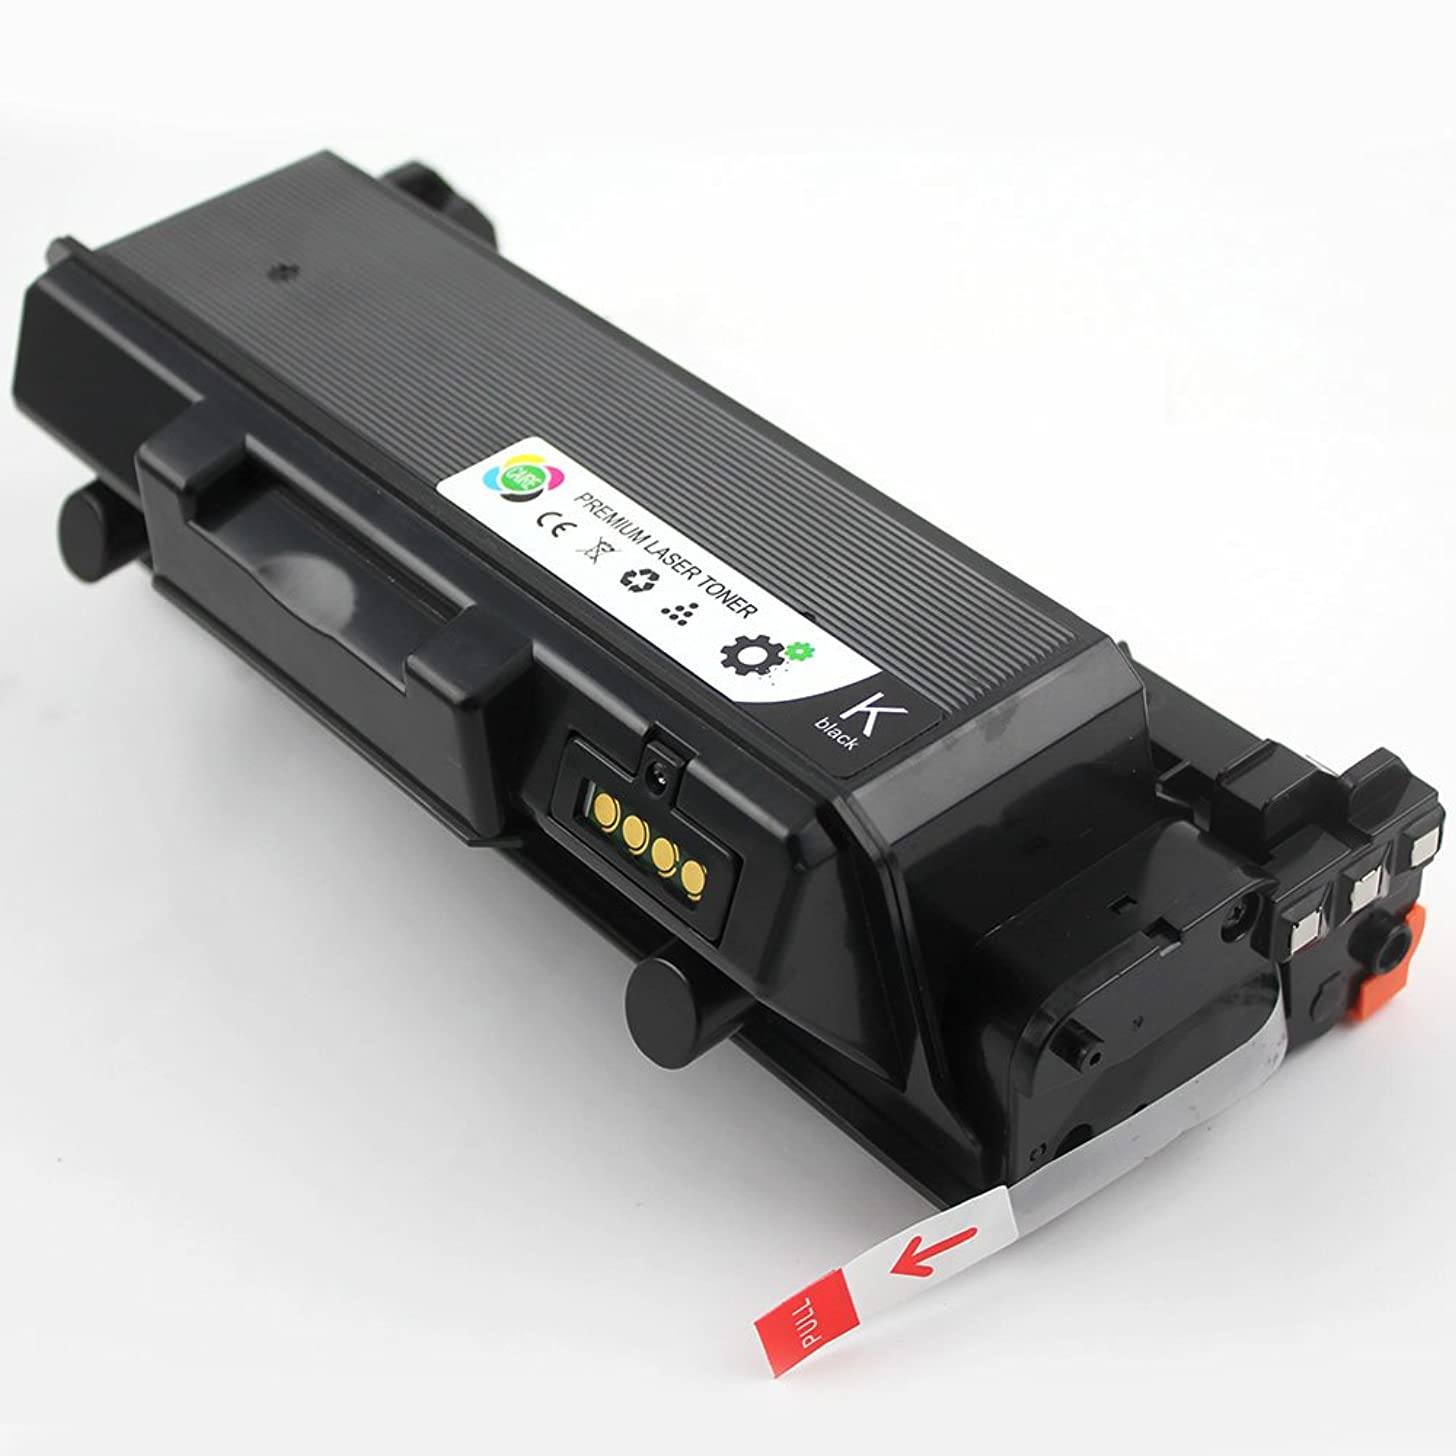 15,000 Pages Caire(TM) Laser Black Toner Cartridge Compatible for Xerox Phaser 3330, WorkCentre 3335, WorkCentre 3345 Printer ( 3330: 15K )